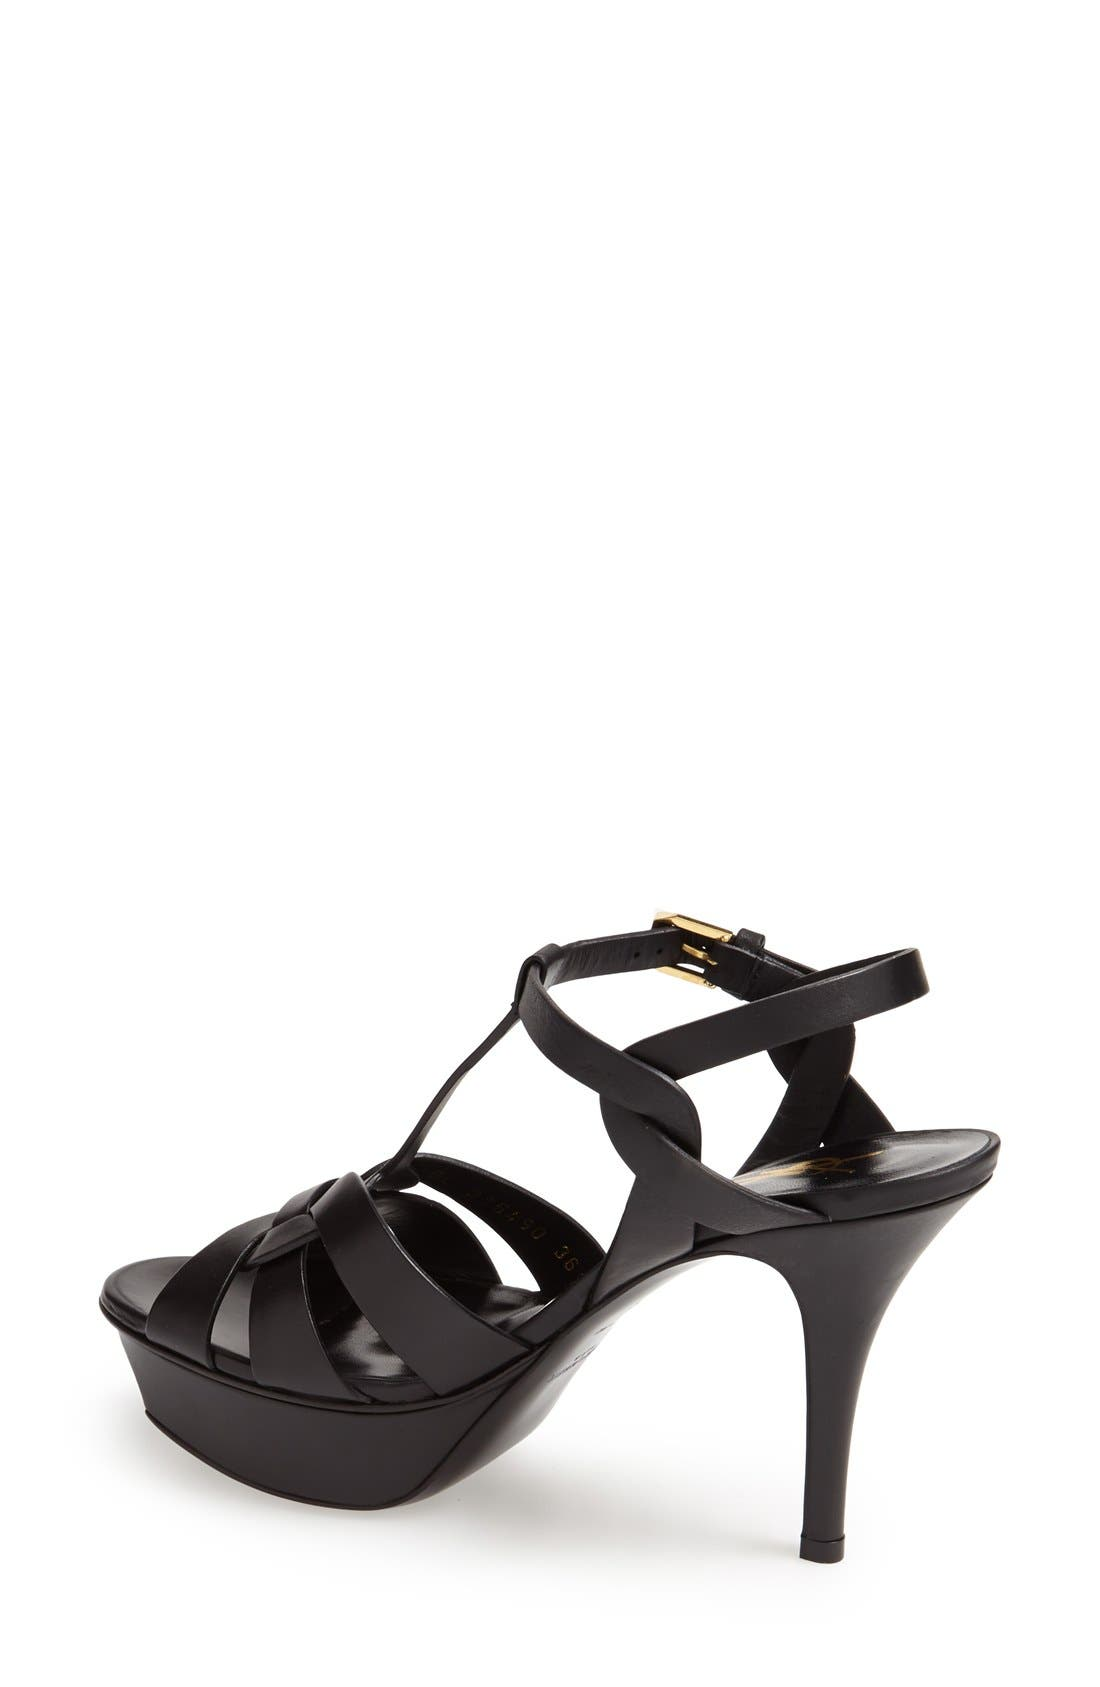 SAINT LAURENT, Tribute T-Strap Sandal, Alternate thumbnail 2, color, 001